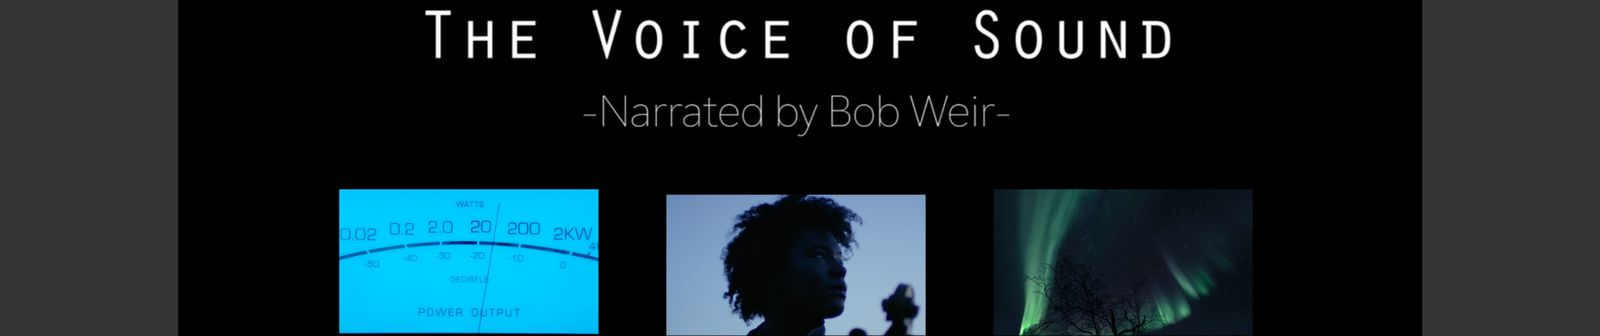 The voice of sound 1 1